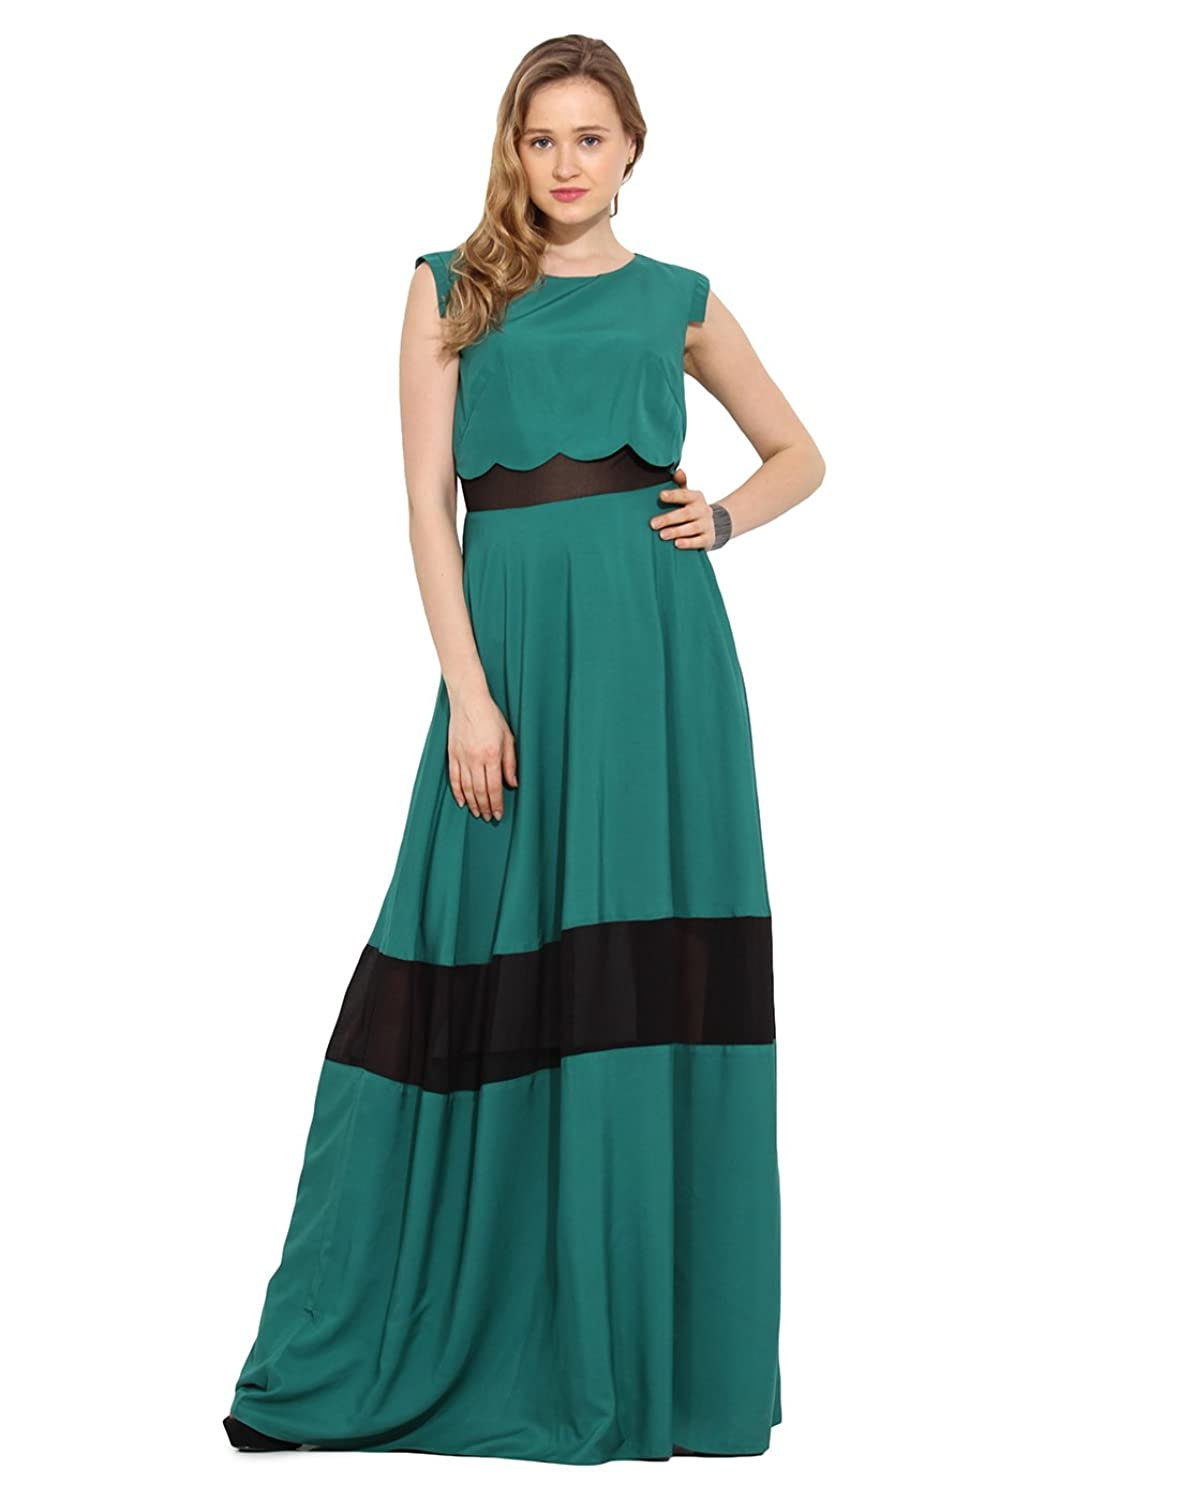 Saiesta Women's Cap Sleeve Green Scallop Hem Floor Length Maxi Dress